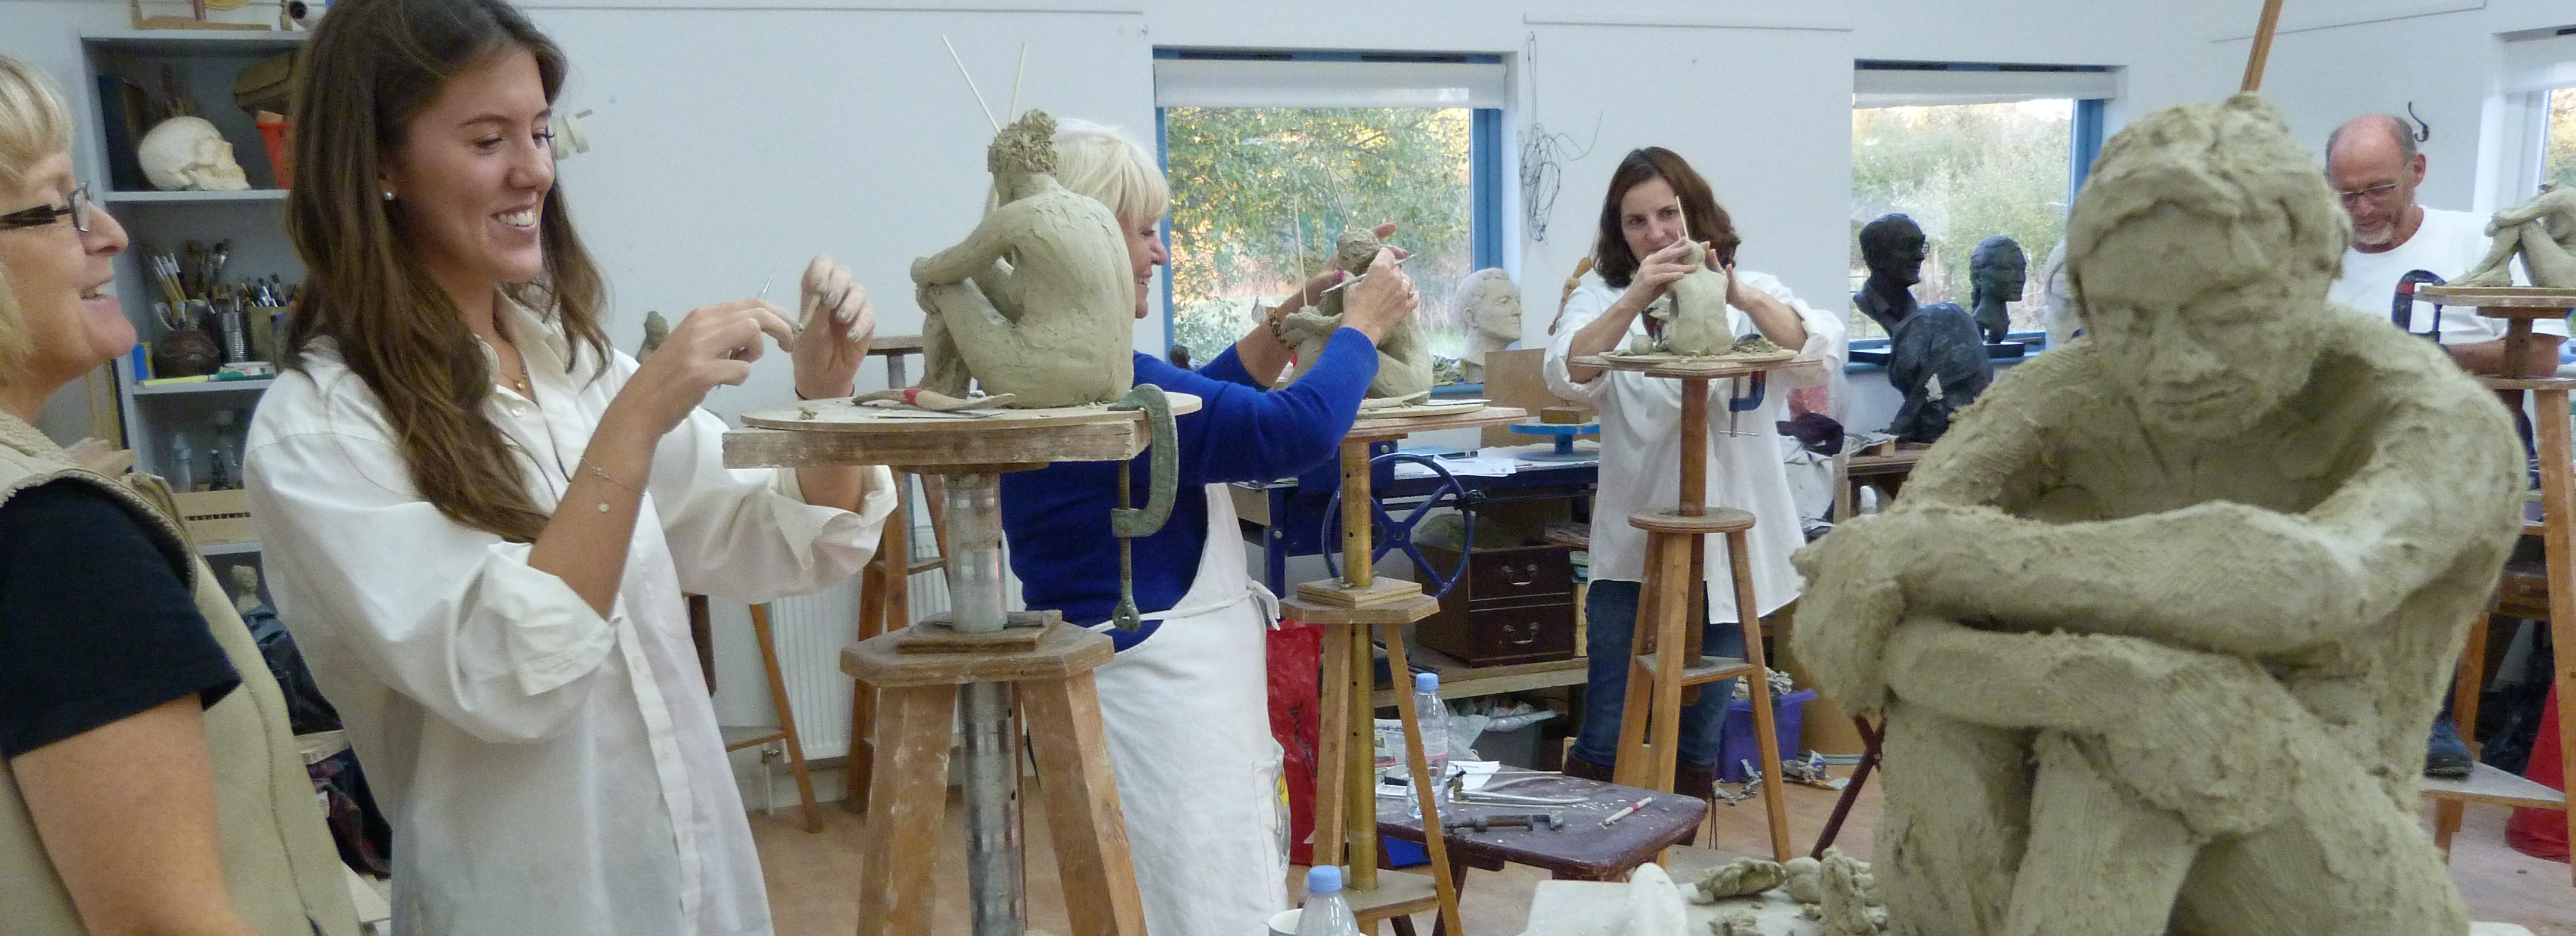 Clay Life Modelling Weekends with Karin Ort - 17/18 October 2015